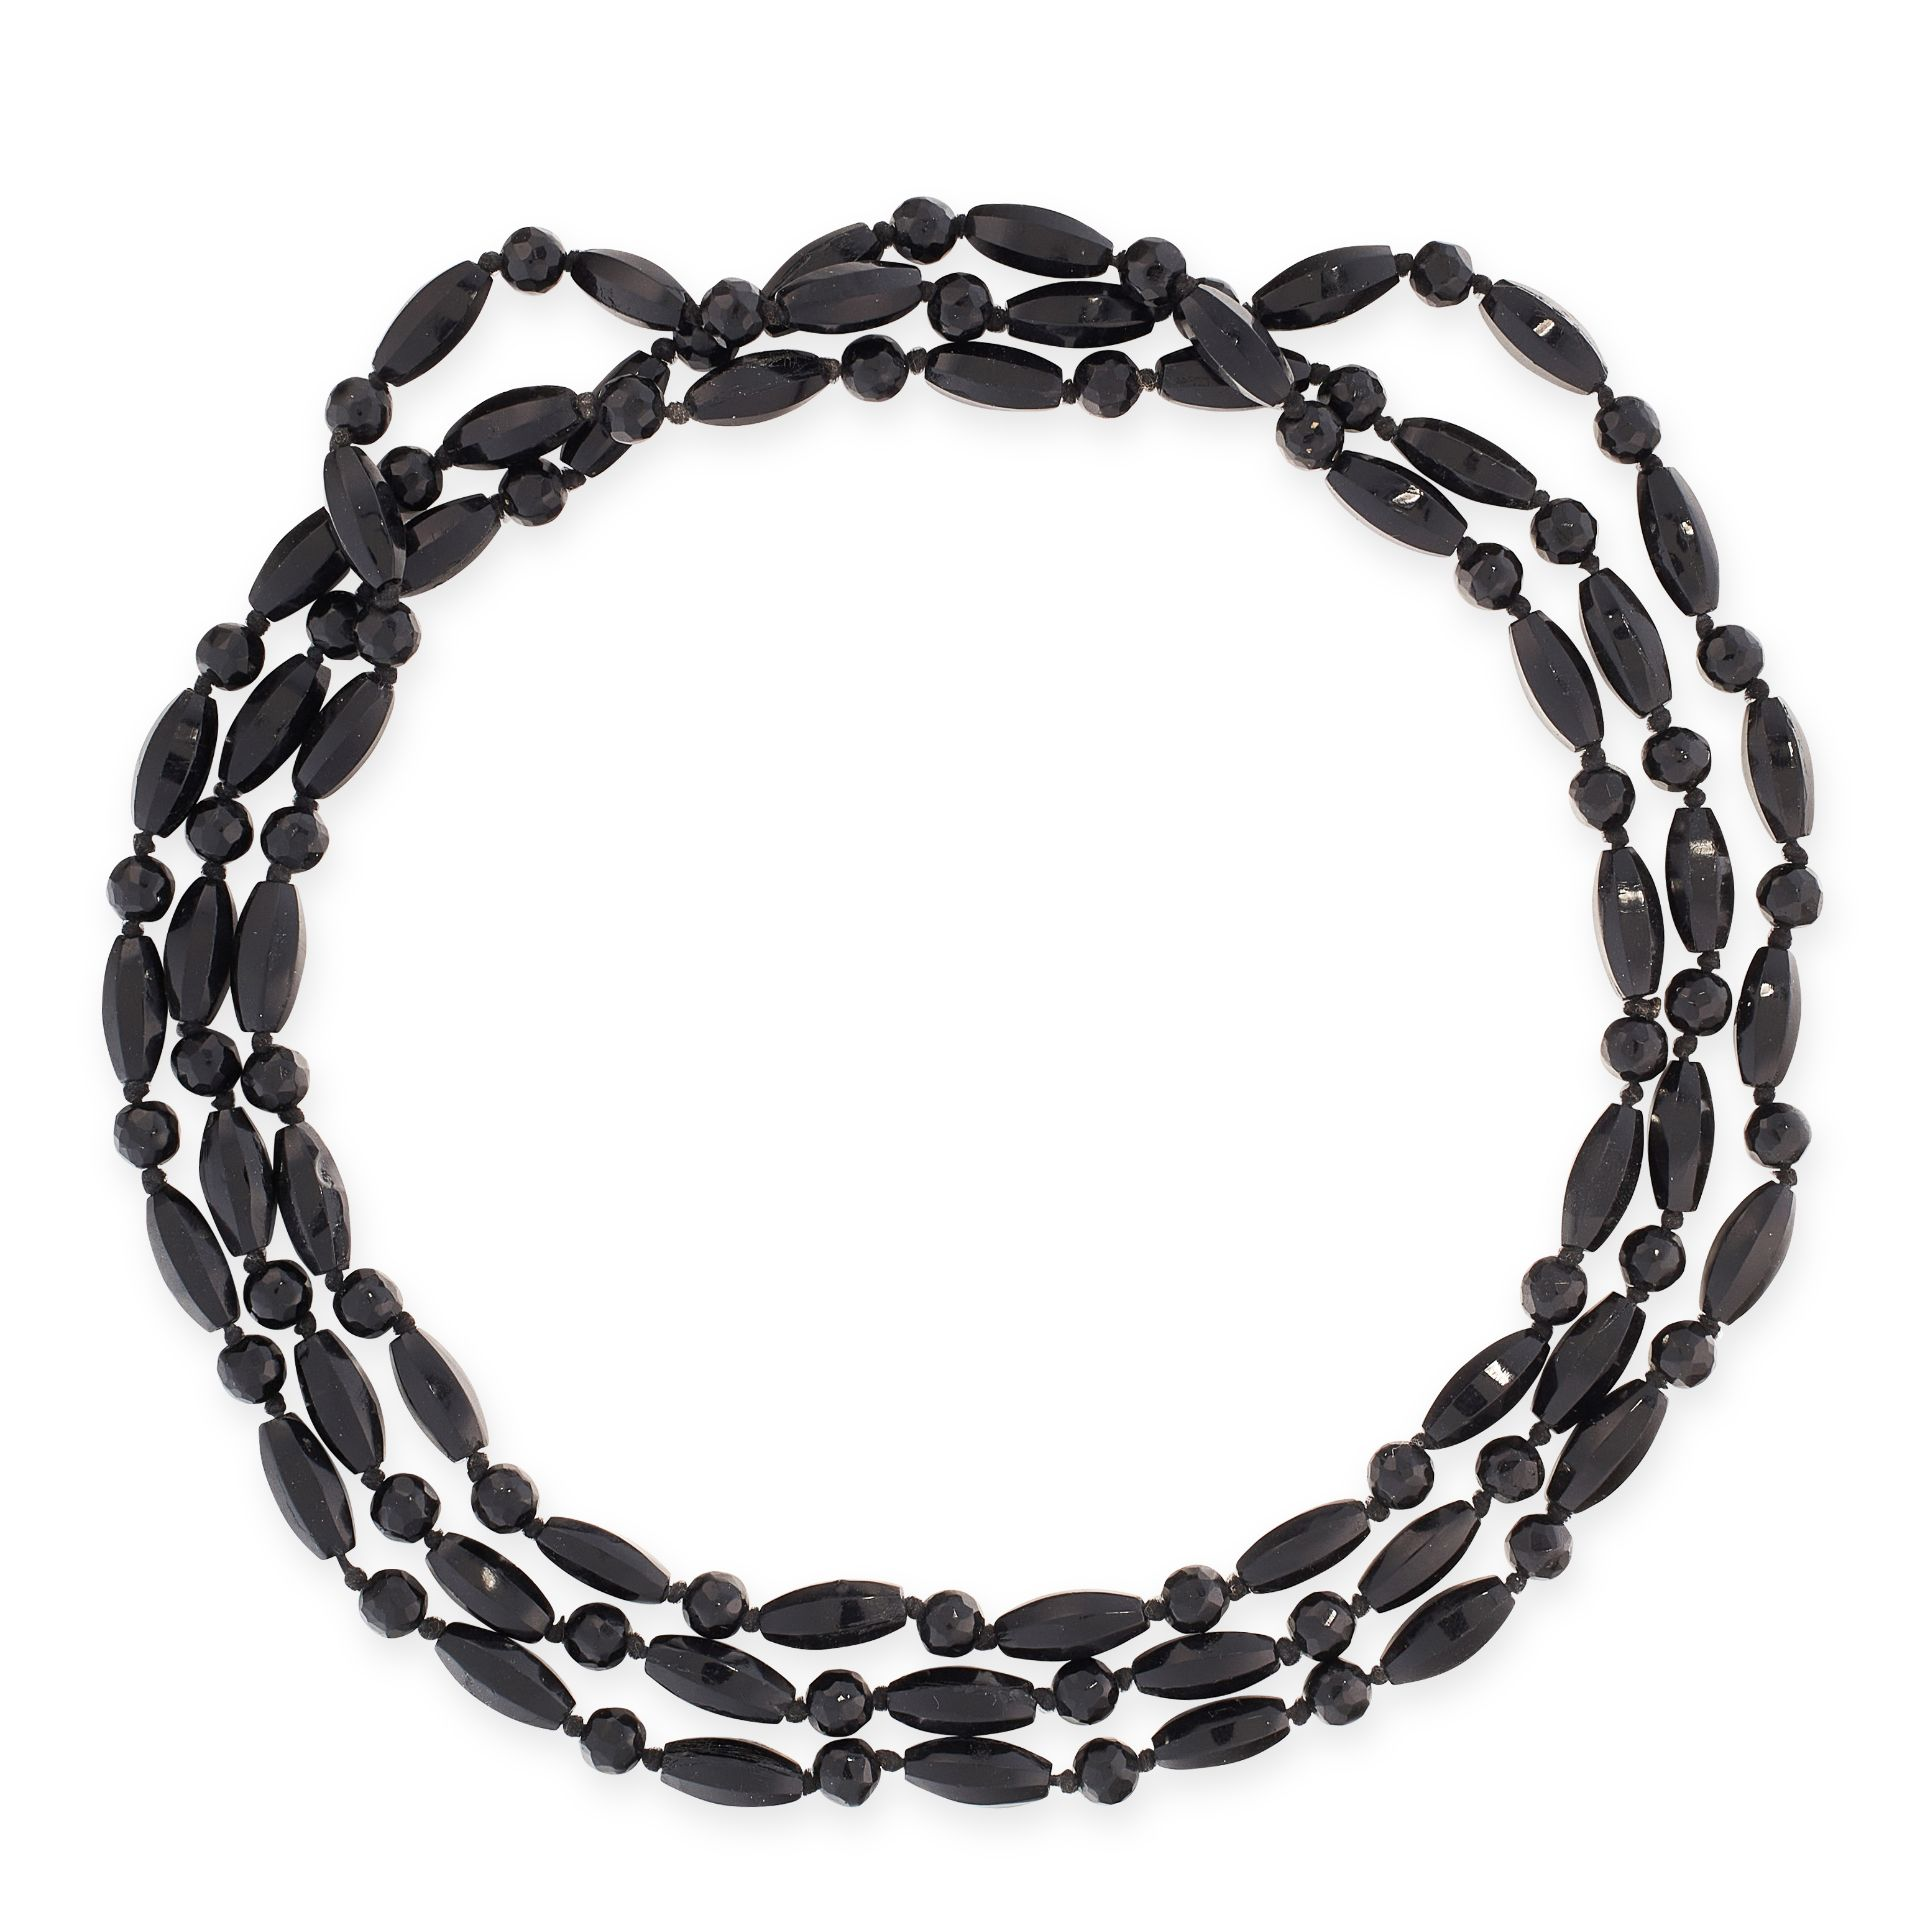 A VINTAGE BEAD NECKLACE comprising a single row of round and elongated faceted black beads, 143.0cm,